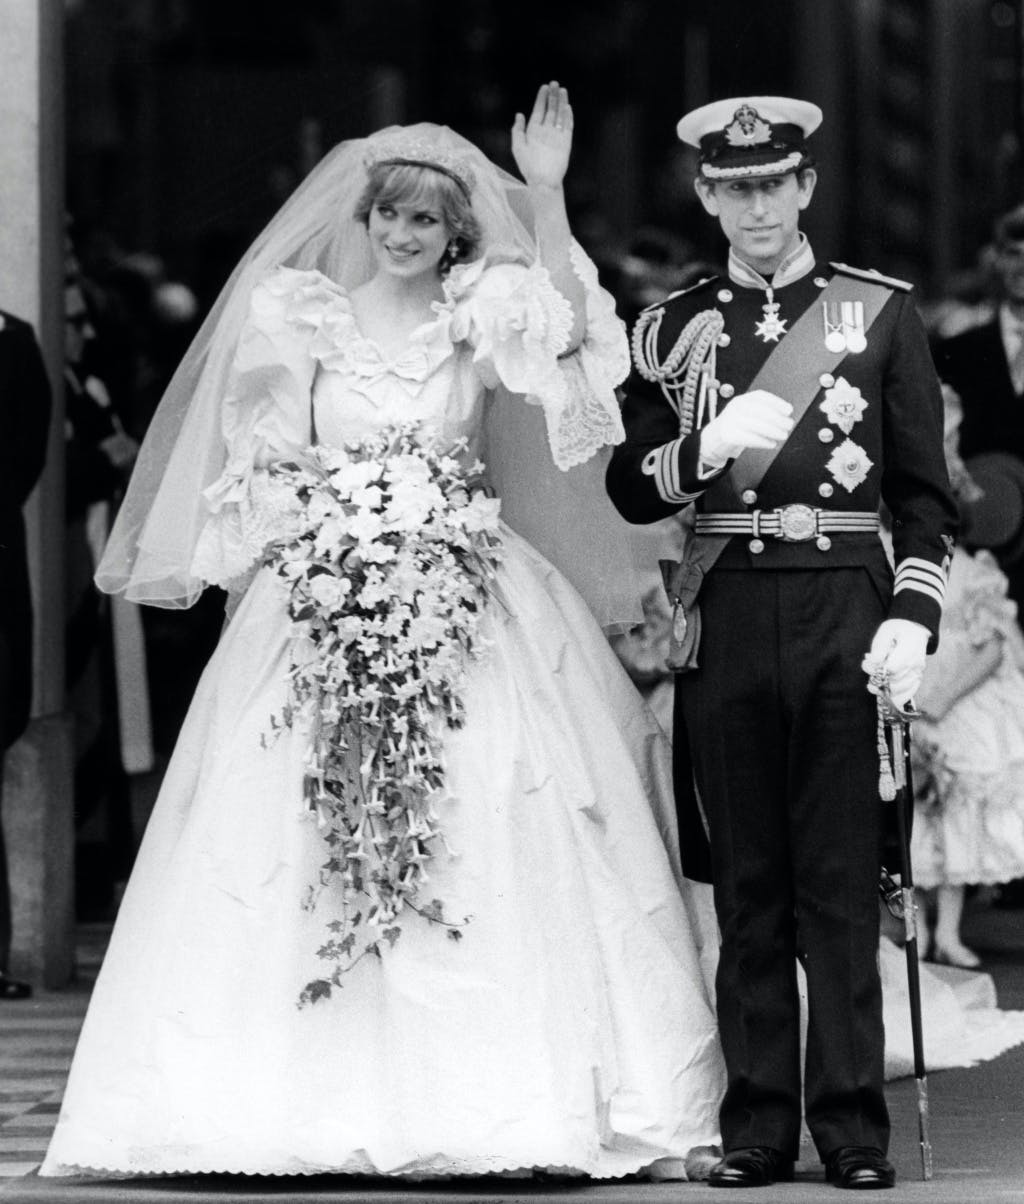 Prince Charles and Princess Diana leaving St Paul's Cathedral, following their wedding ceremony 29 July 1981